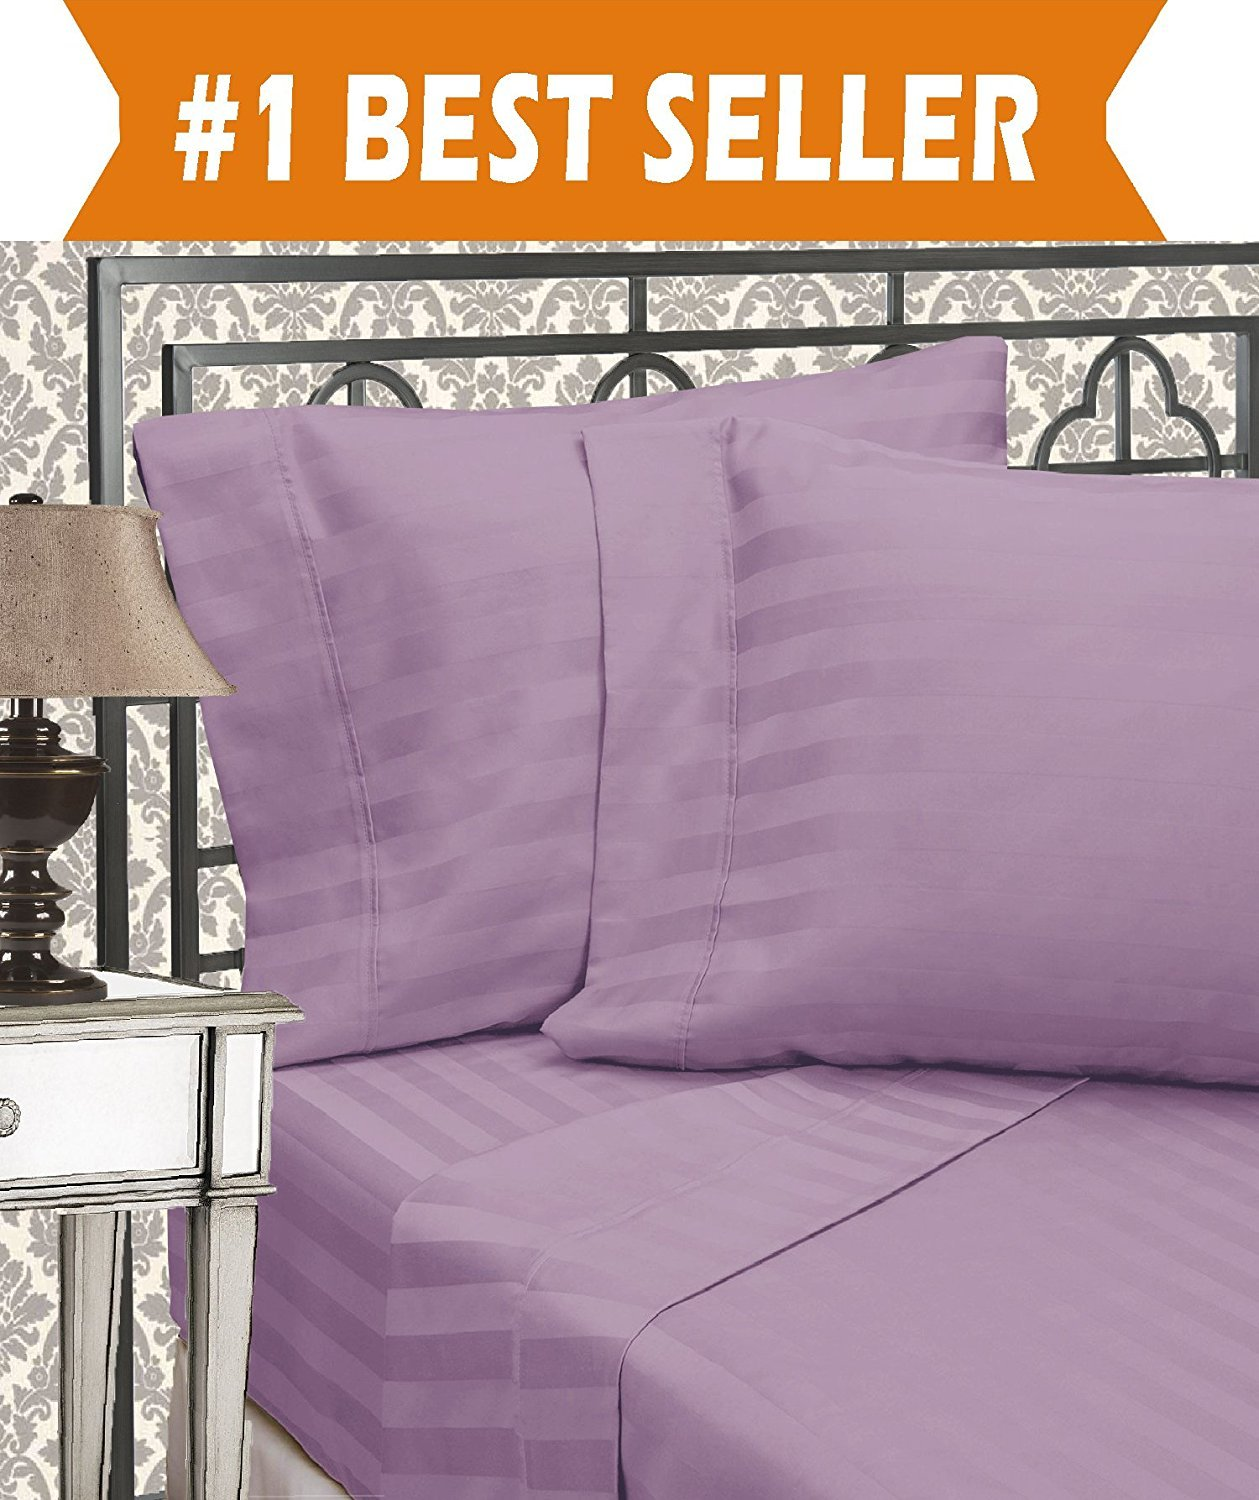 Luxurious Wrinkle Resistant 6-Piece DAMASK STRIPE Bed Sheet Set, Queen, Lavender/Lilac